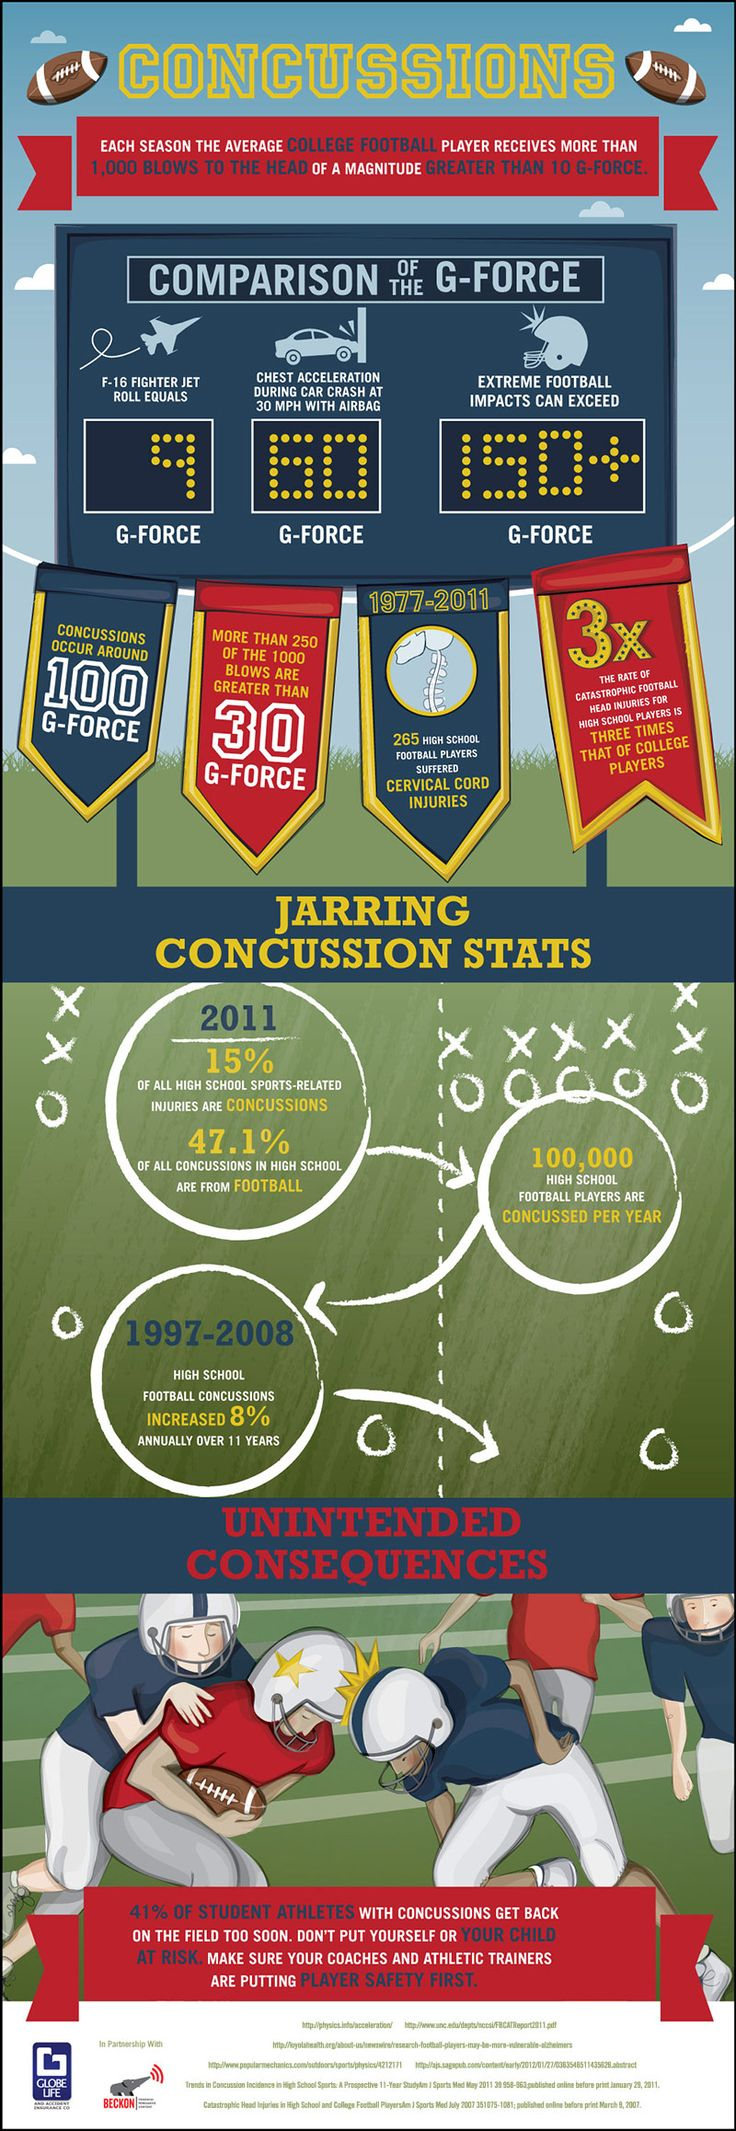 Jarring Concussion Dangers In High School And College Football. 41% of student athletes with concussions get back on the field too soon. Don't put yourself or your child at risk. Make sure your coaches and athletic trainers are putting player safety first.